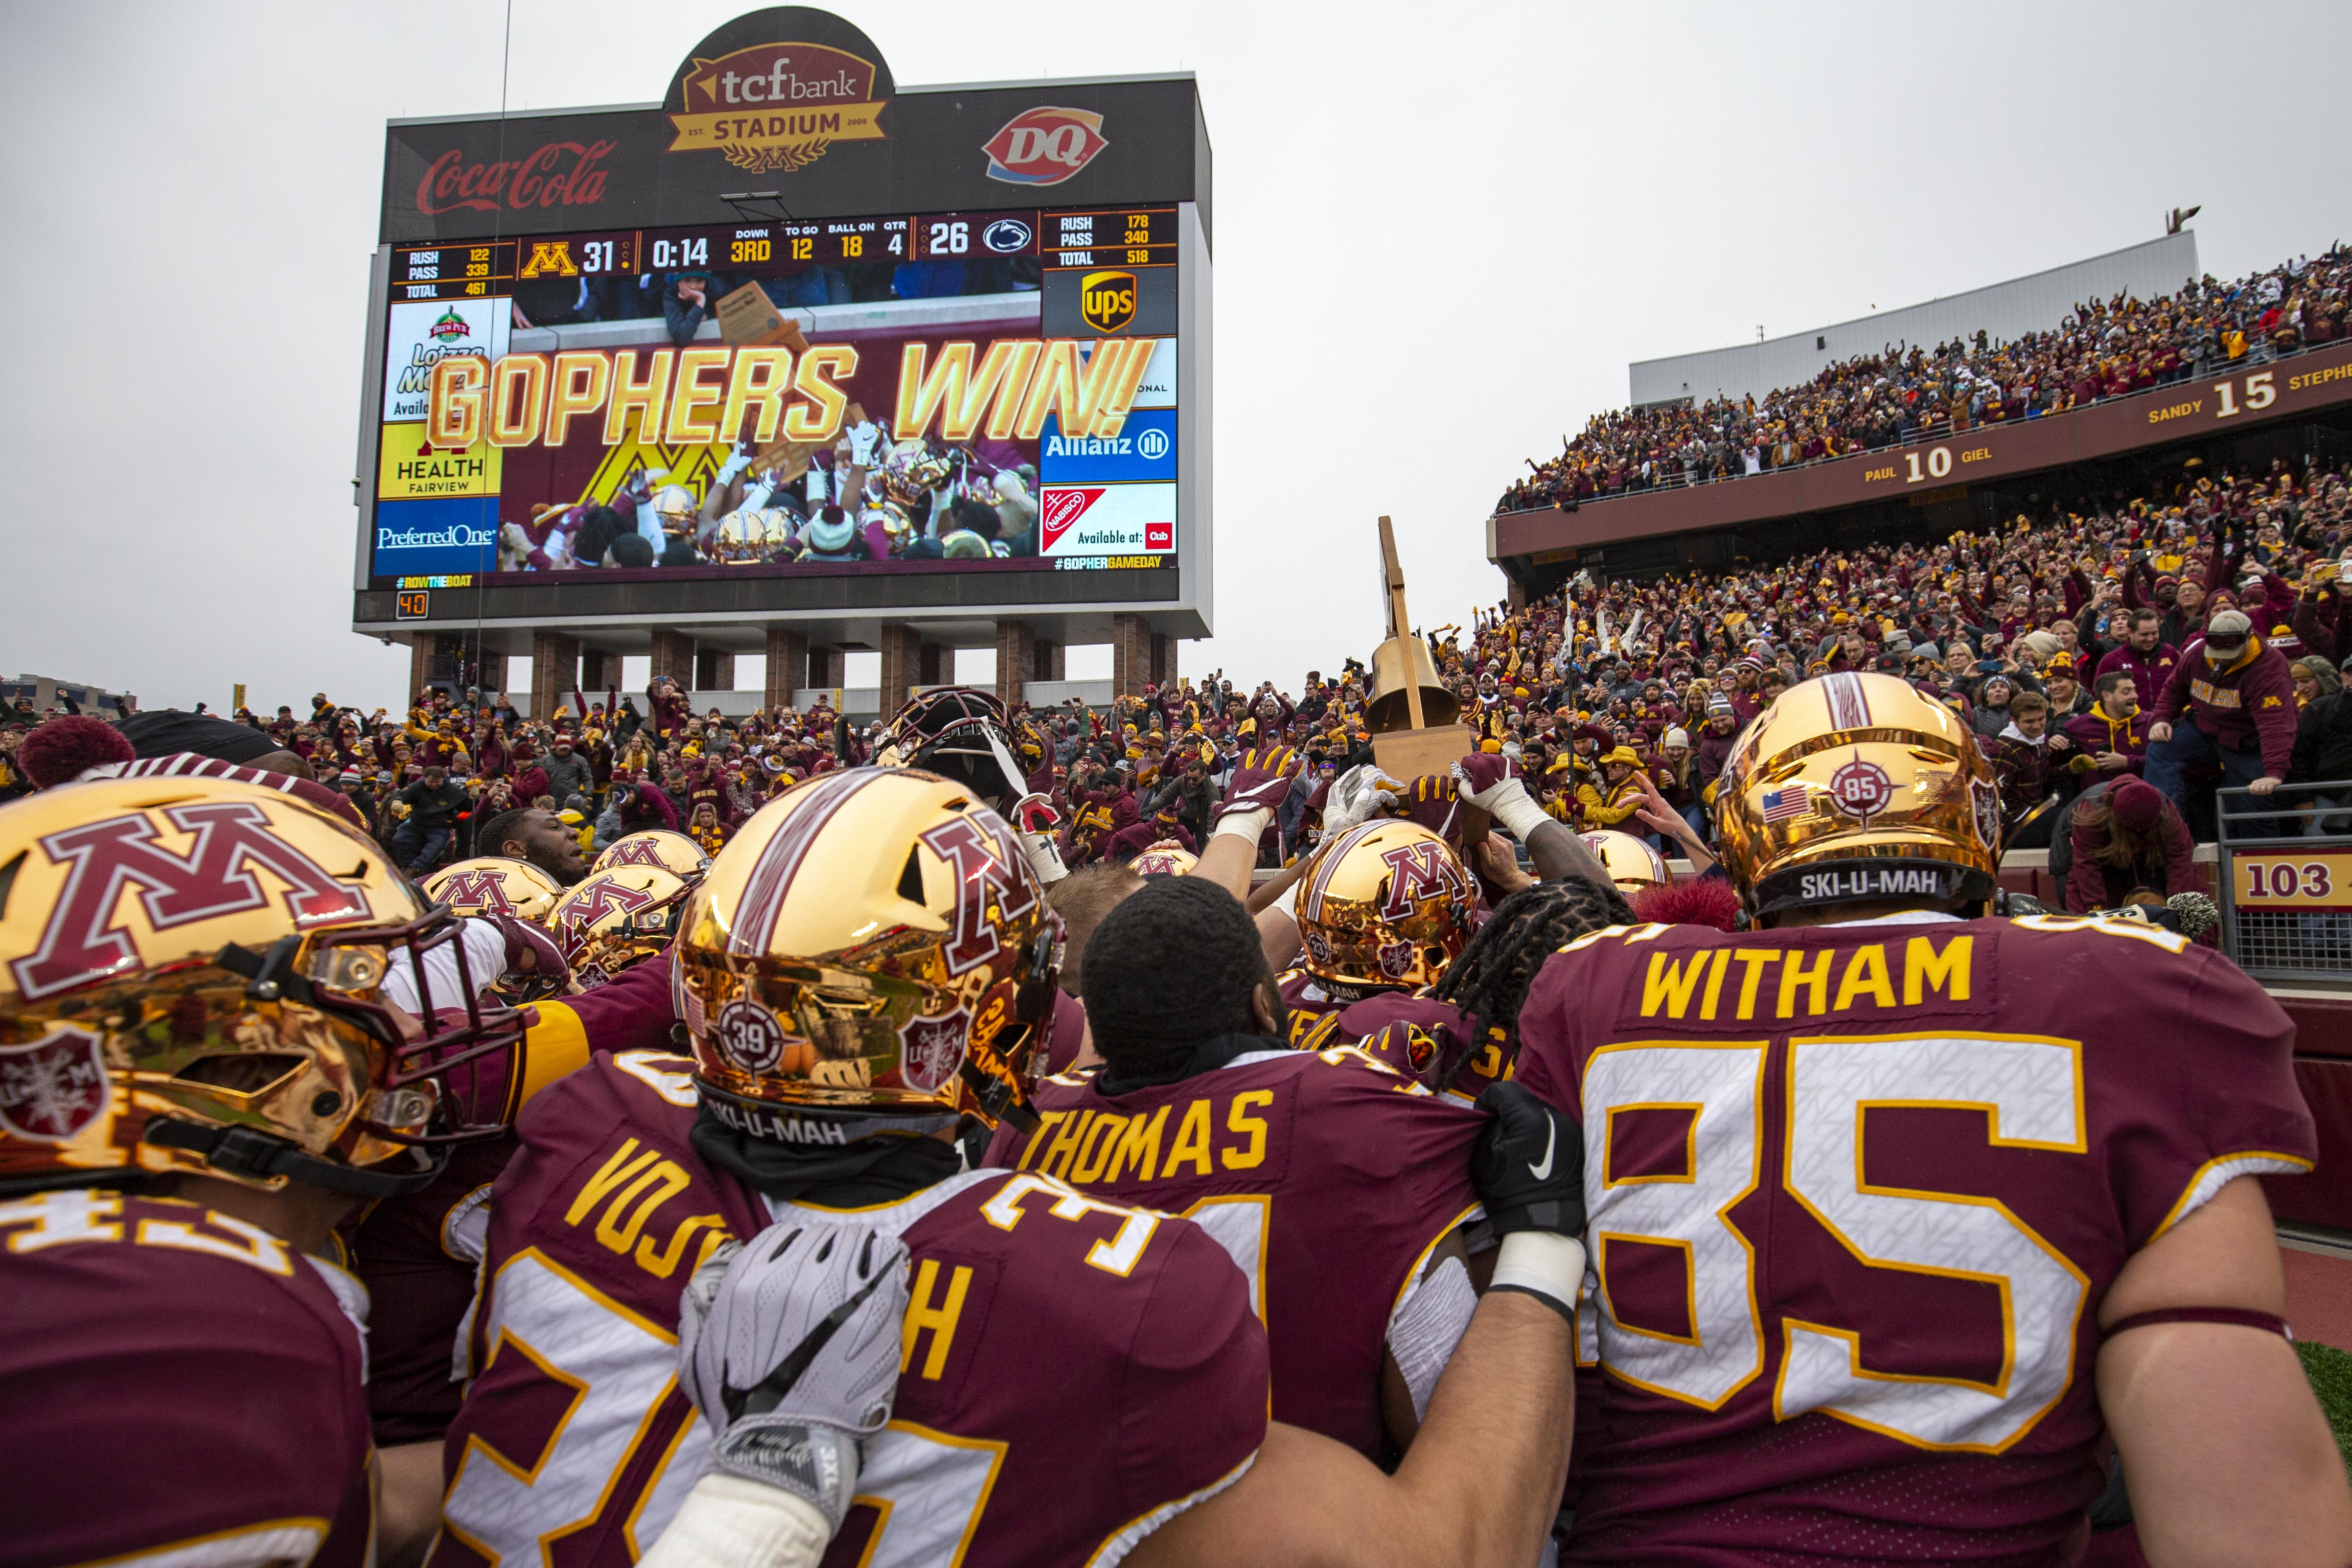 Nov 9, 2019; Minneapolis, MN, USA; Minnesota Golden Gophers team holds up the Governor Liberty Bell trophy after defeating the Penn State Nittany Lions at TCF Bank Stadium. Mandatory Credit: Jesse Johnson-USA TODAY Sports